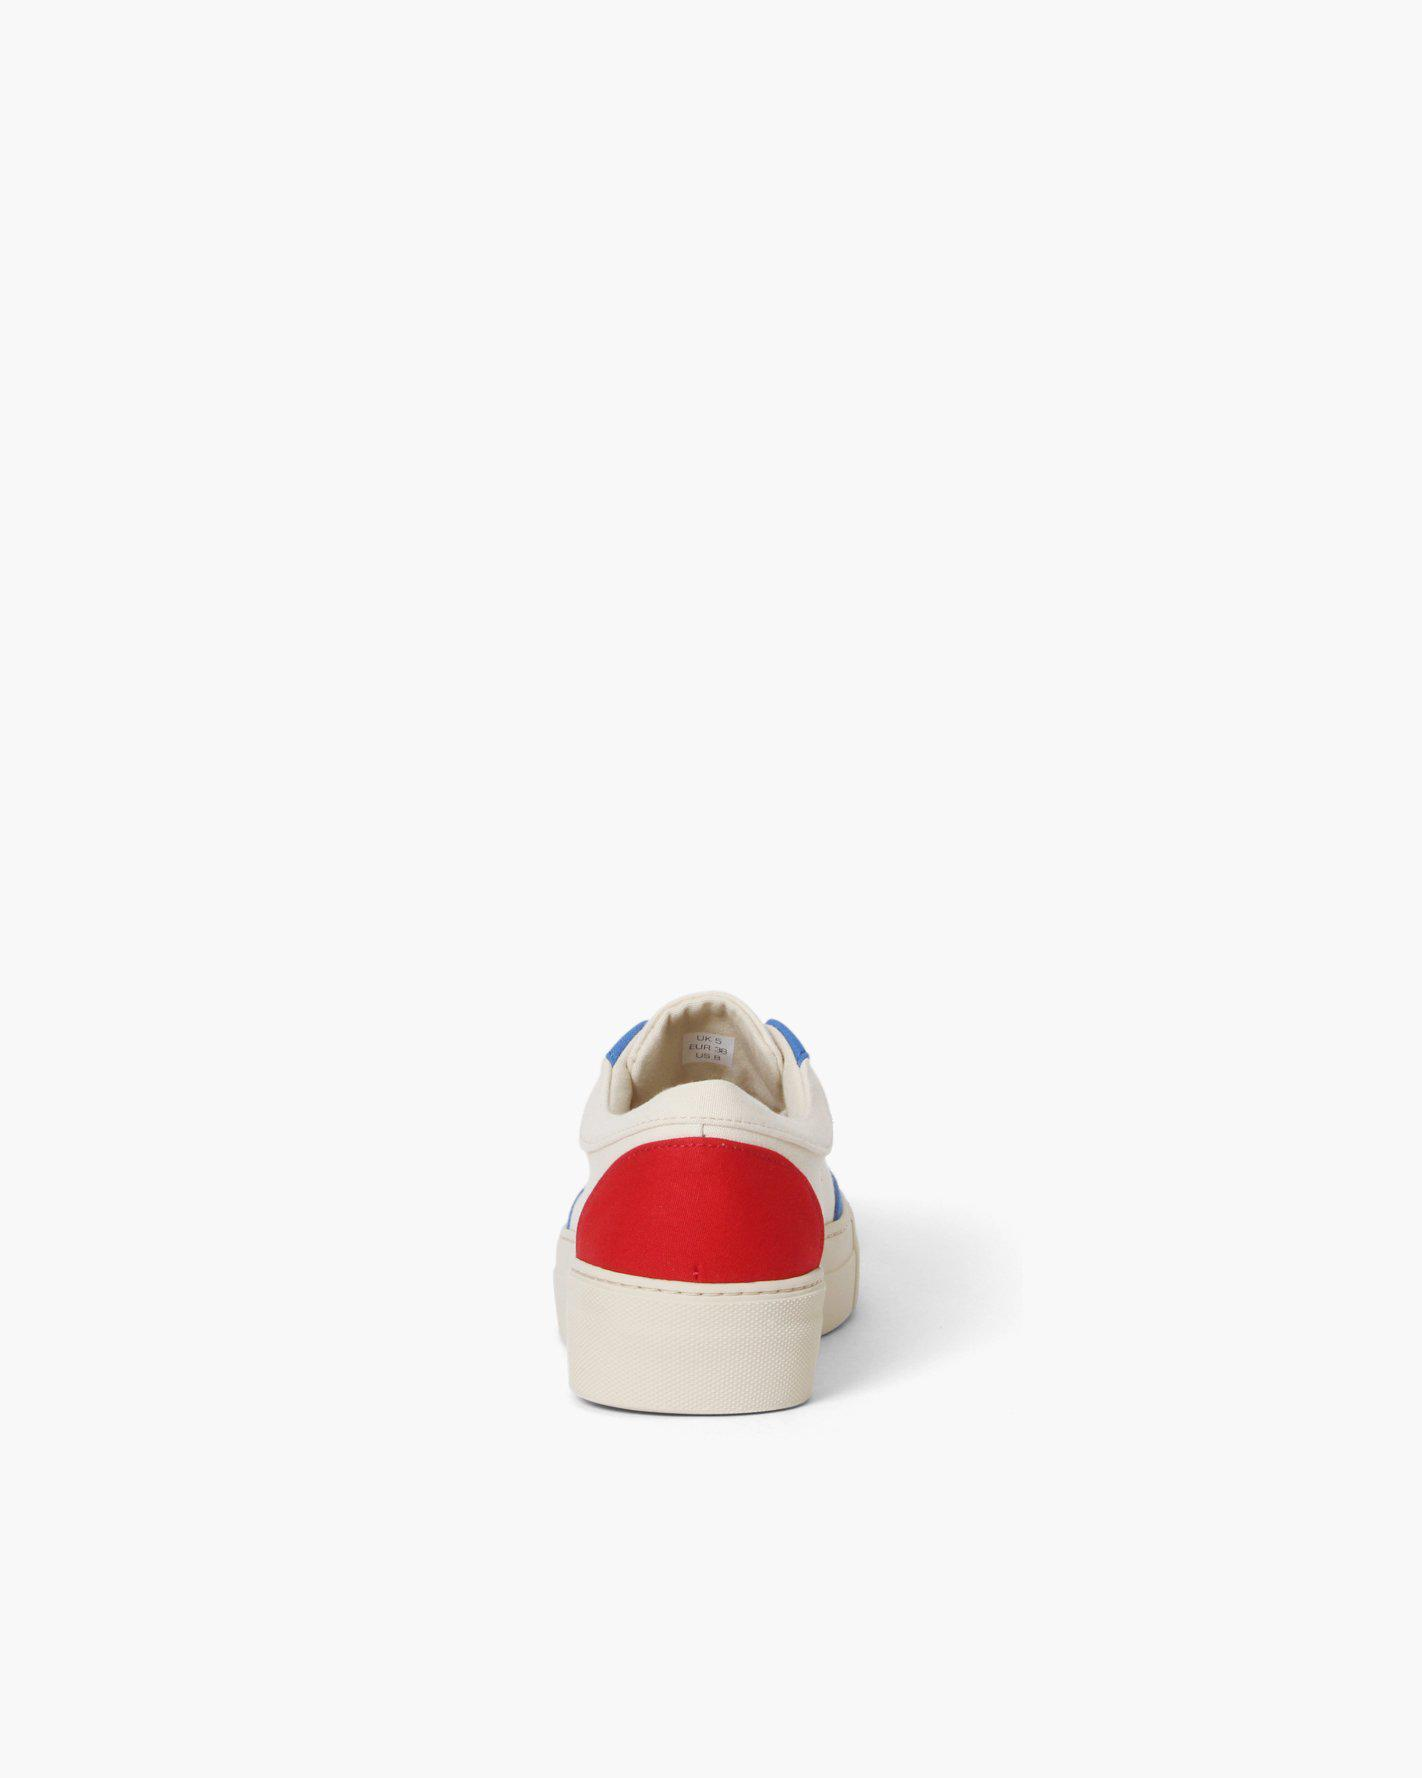 Bailey Sneakers Cotton Canvas Blue + Red - SALE 2